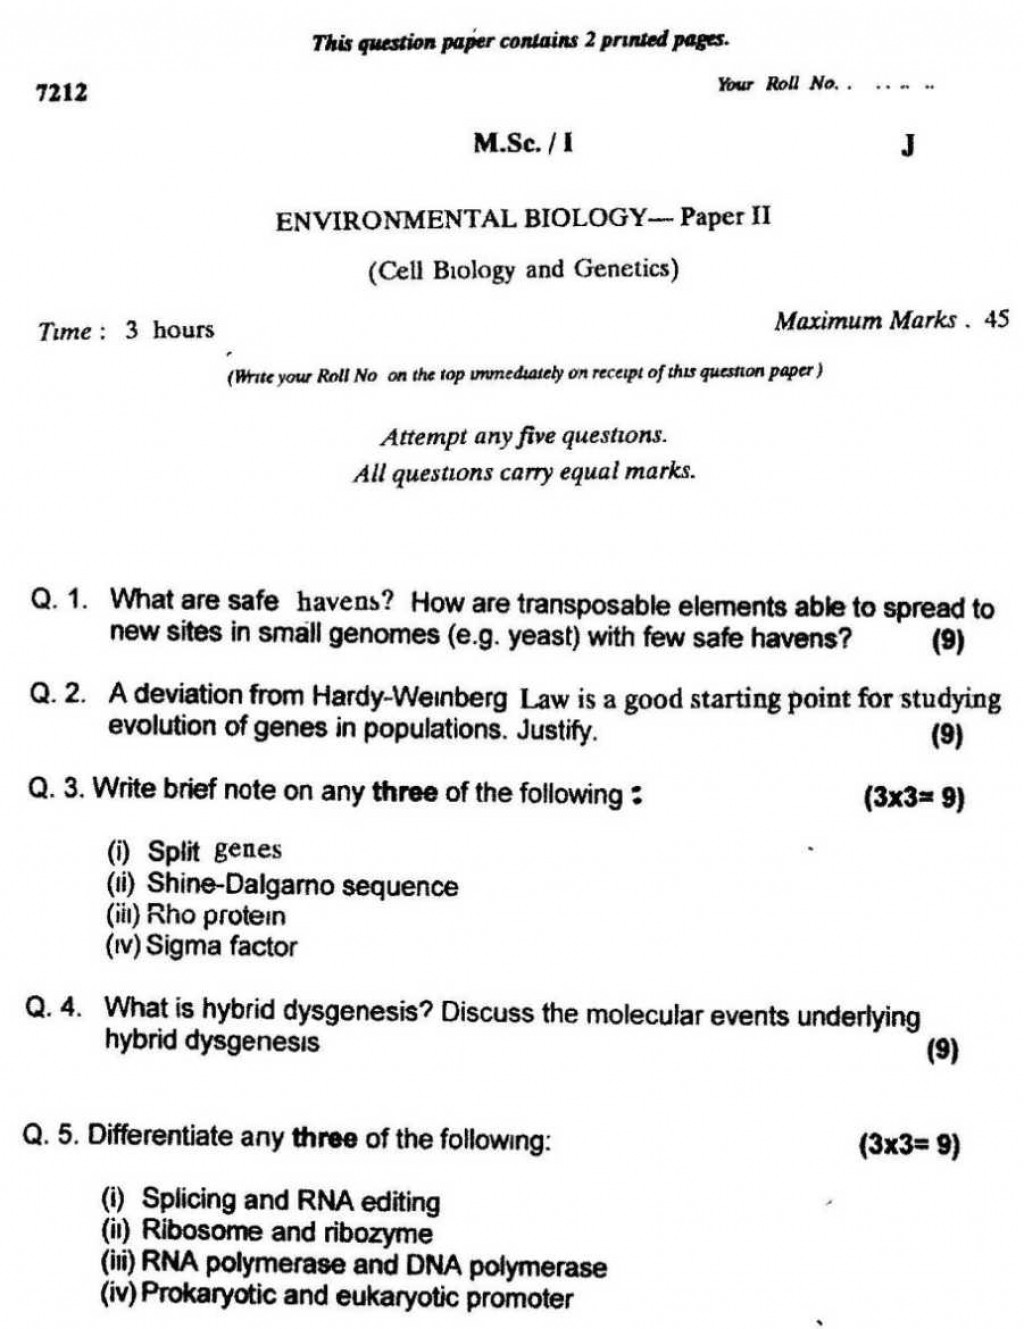 012 Delhi University M Sc Environmental Biology 1st Year Previous Years Question Pap Research Paper Surprising Topics Large